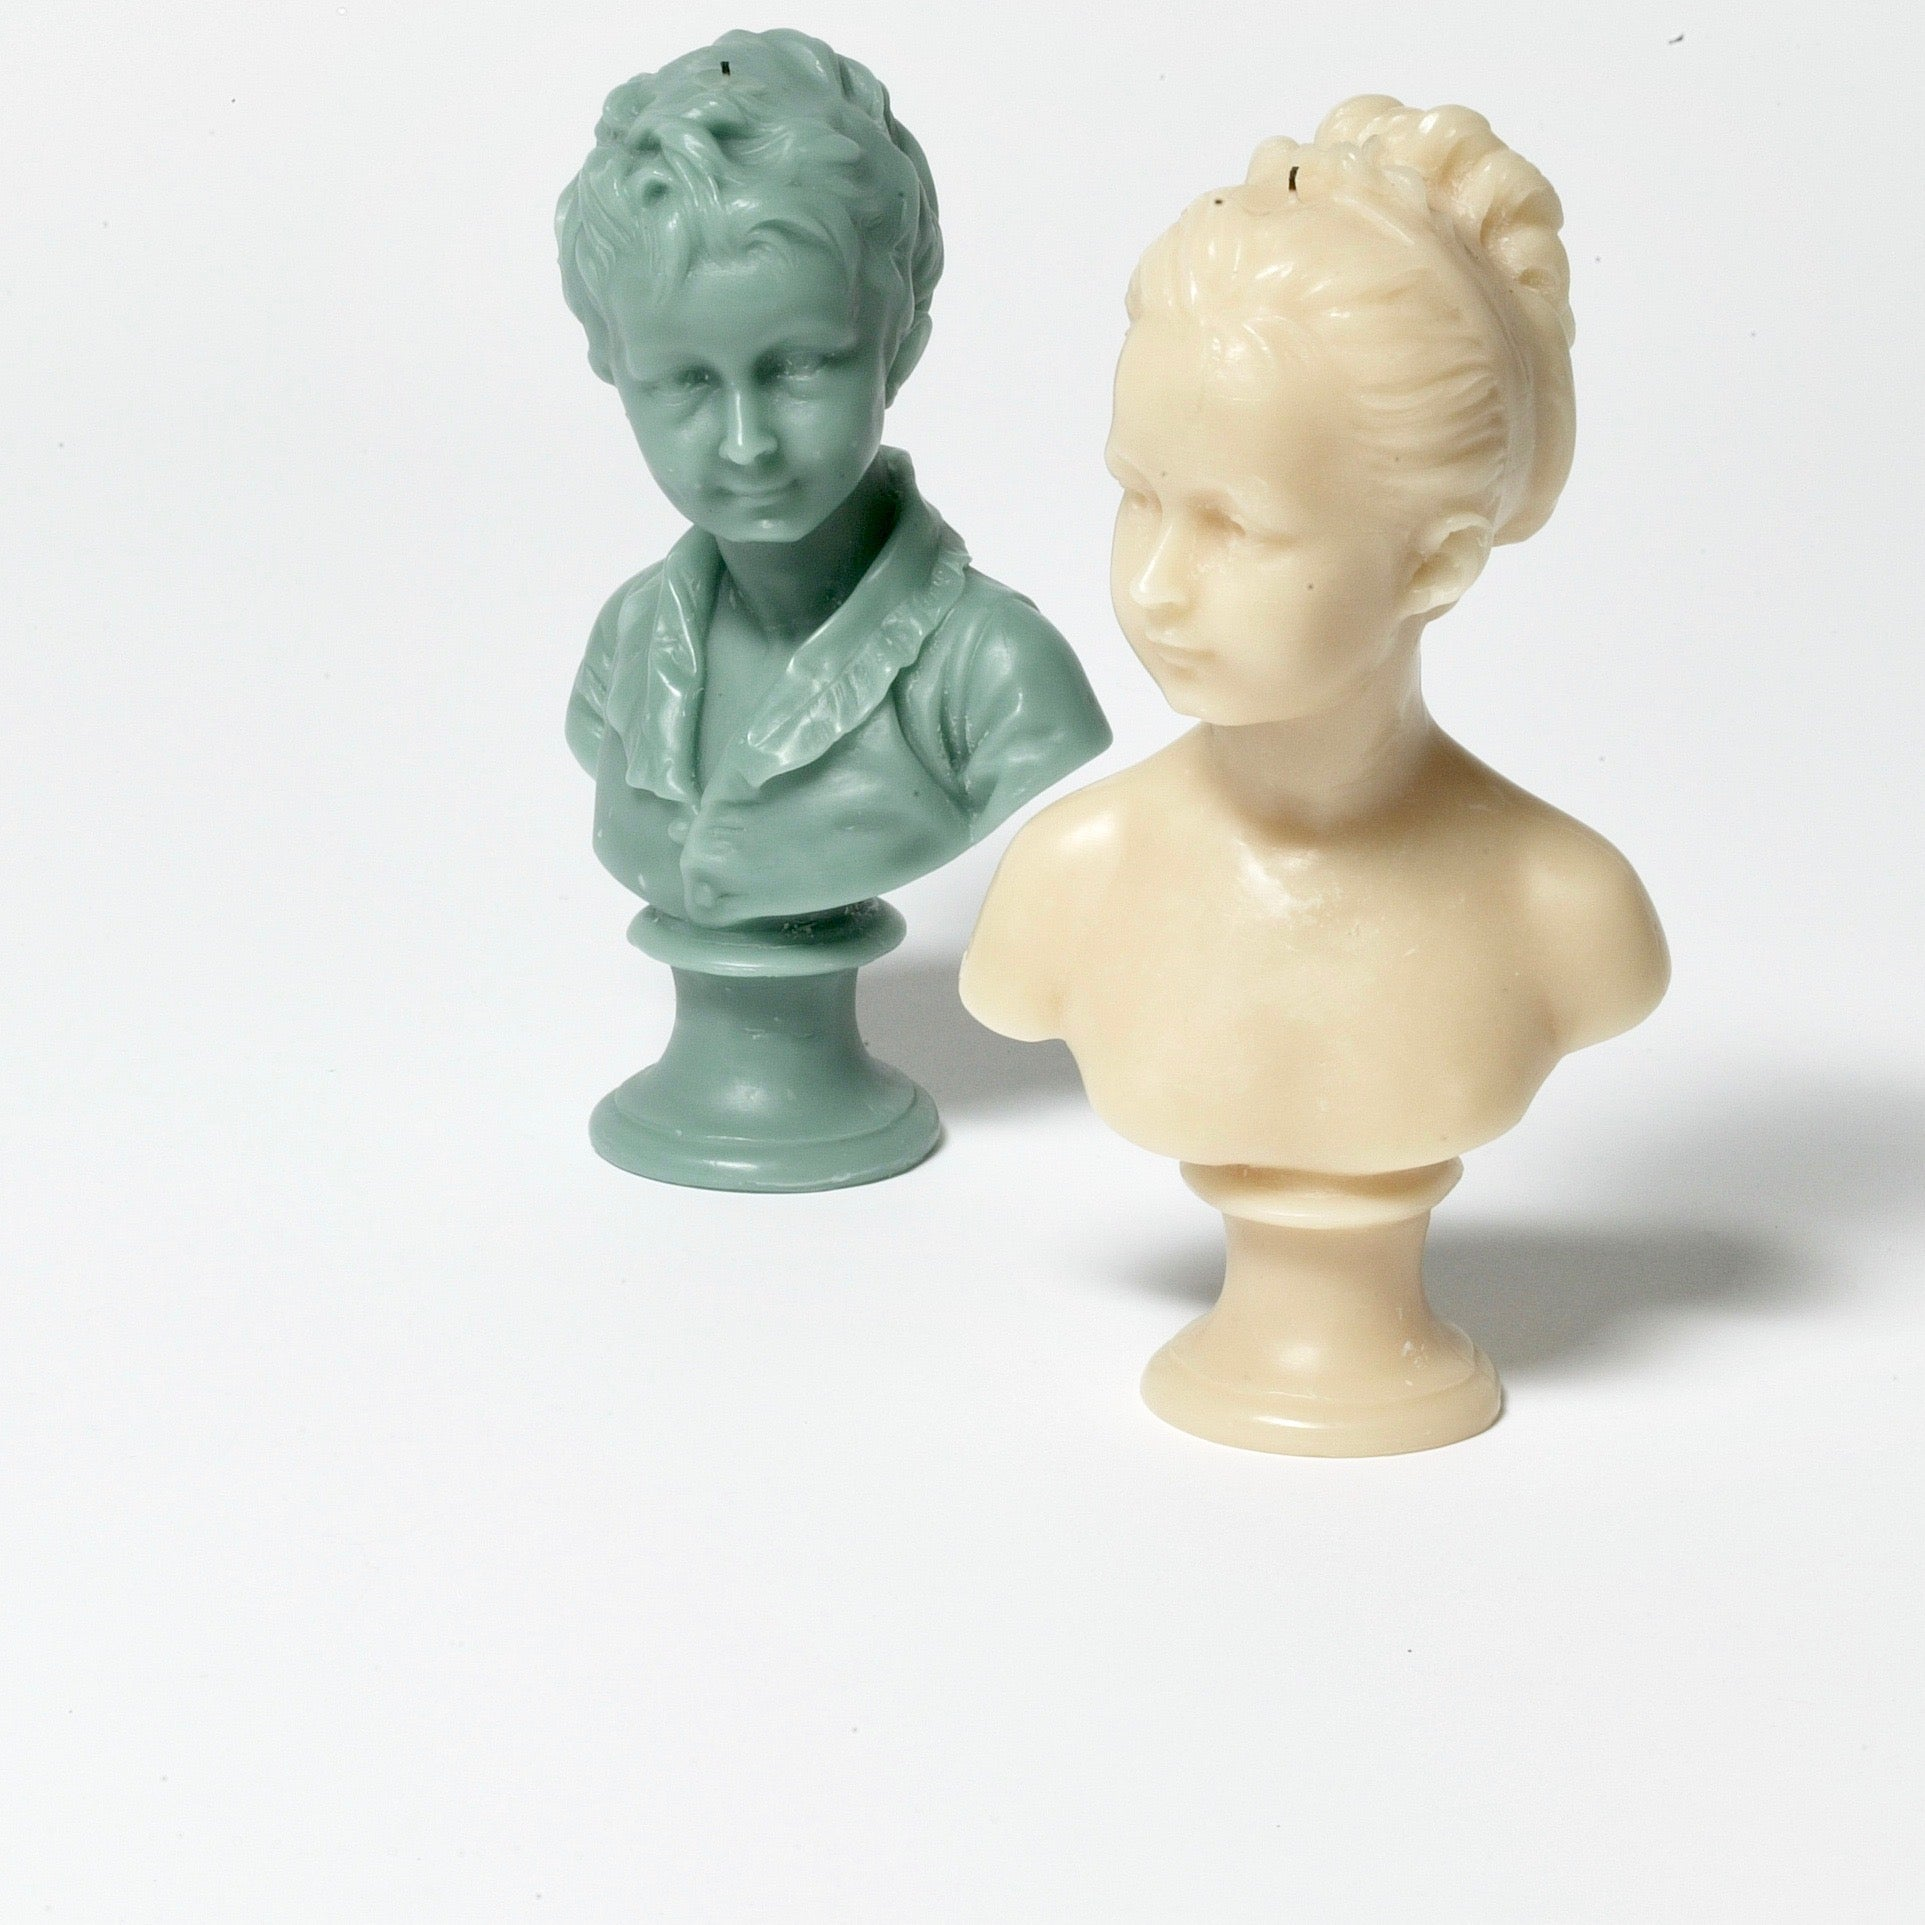 Wax Busts